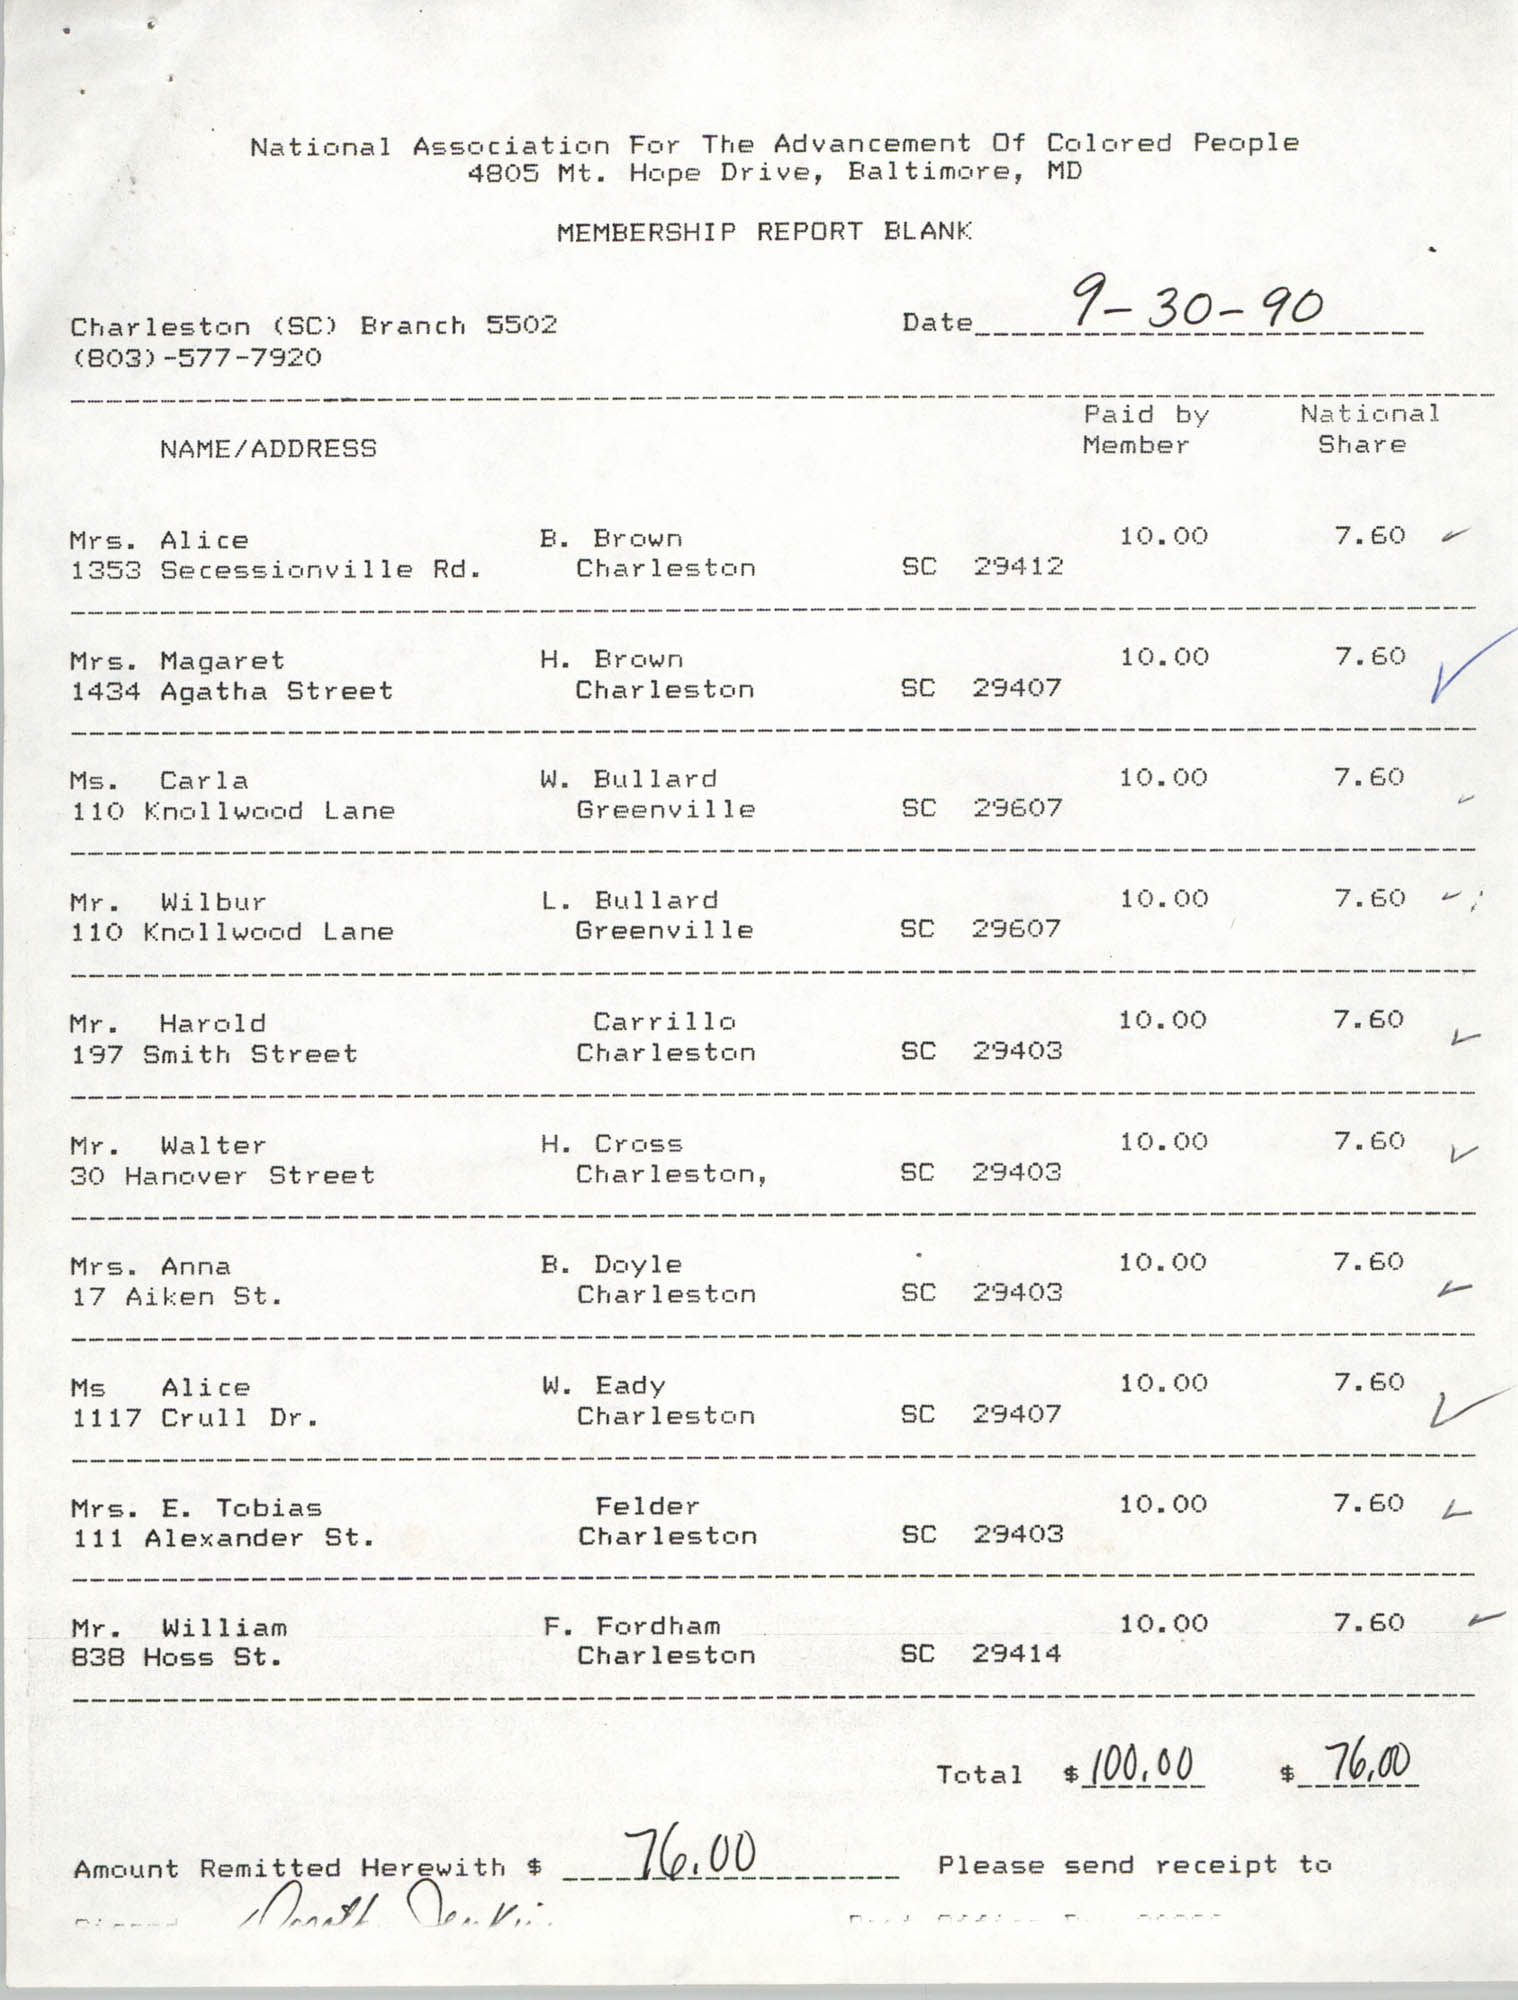 Membership Report Blank, Charleston Branch of the NAACP, Dorothy Jenkins, September 30, 1990